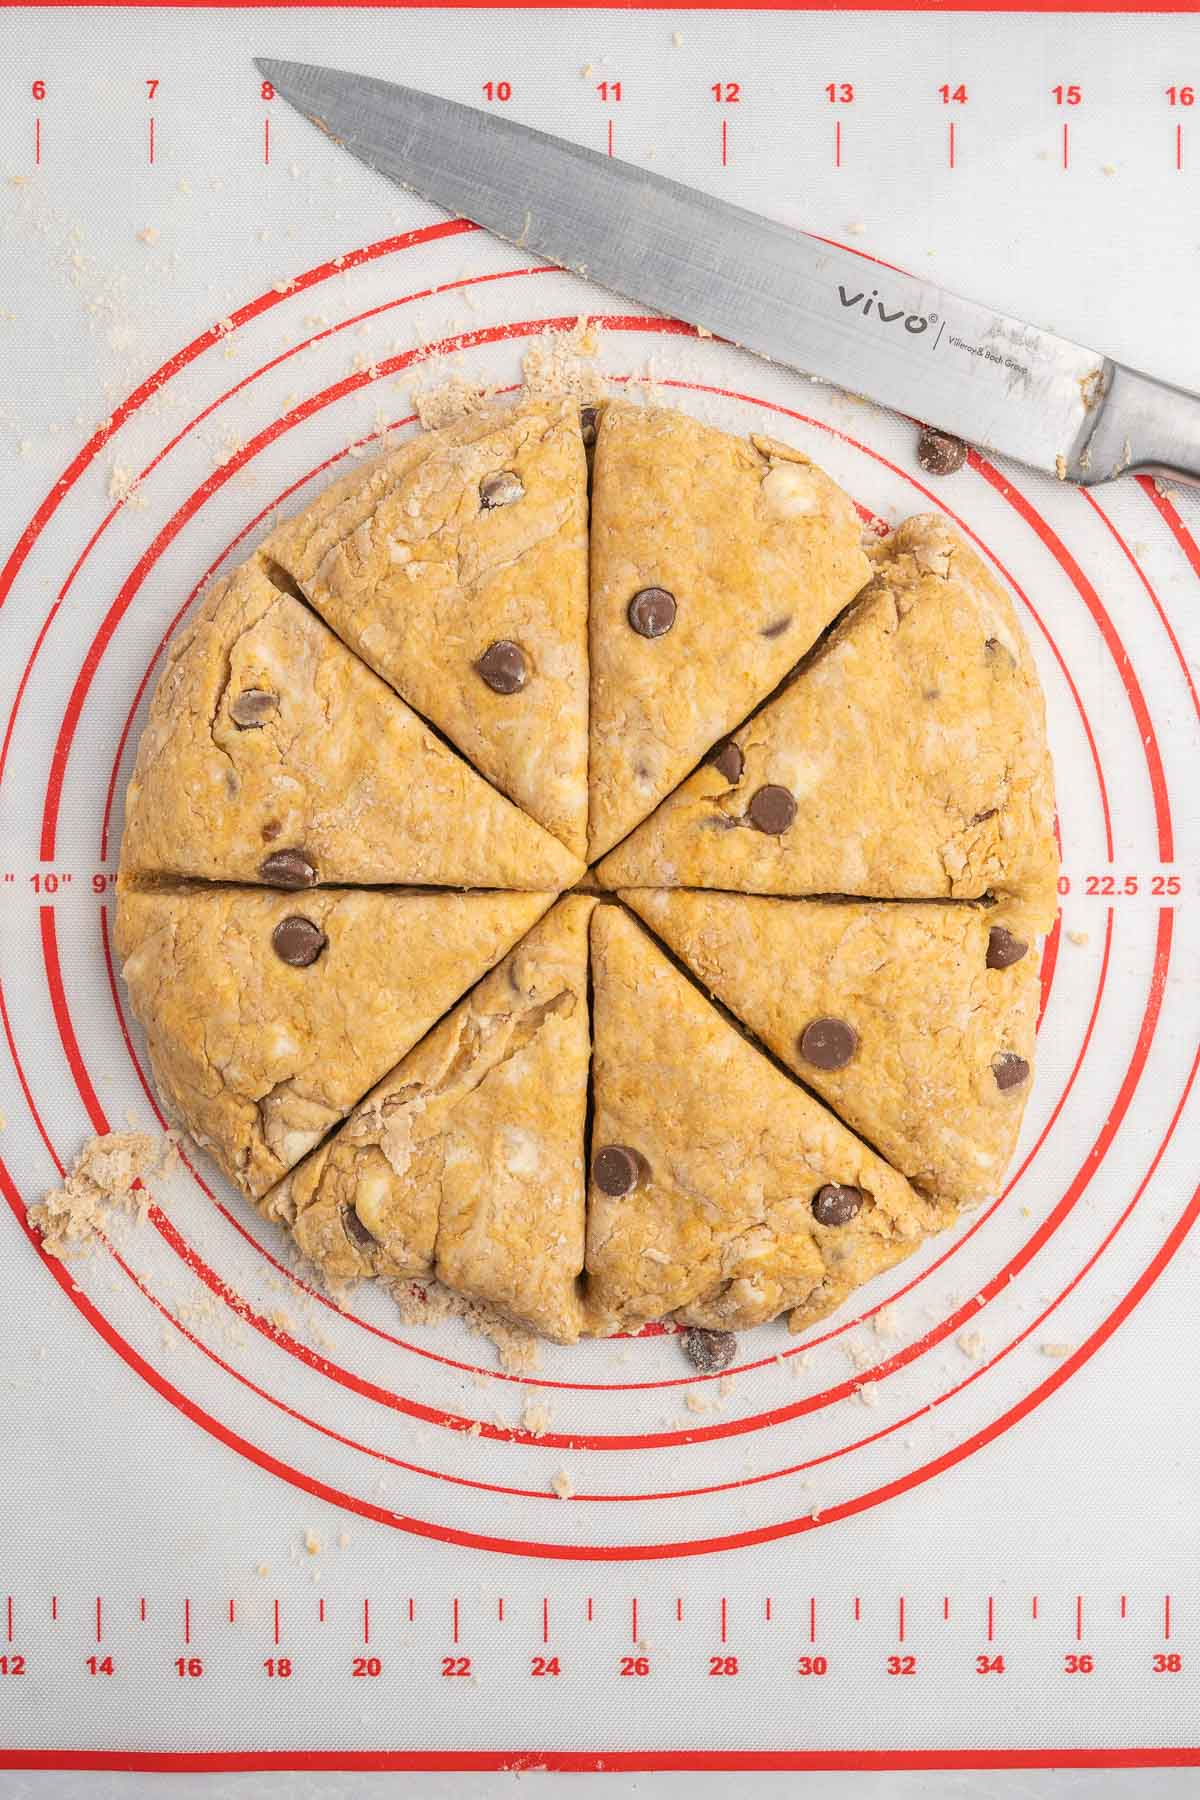 Scone dough pressed into a circle and cut into 8 wedges with a knife.